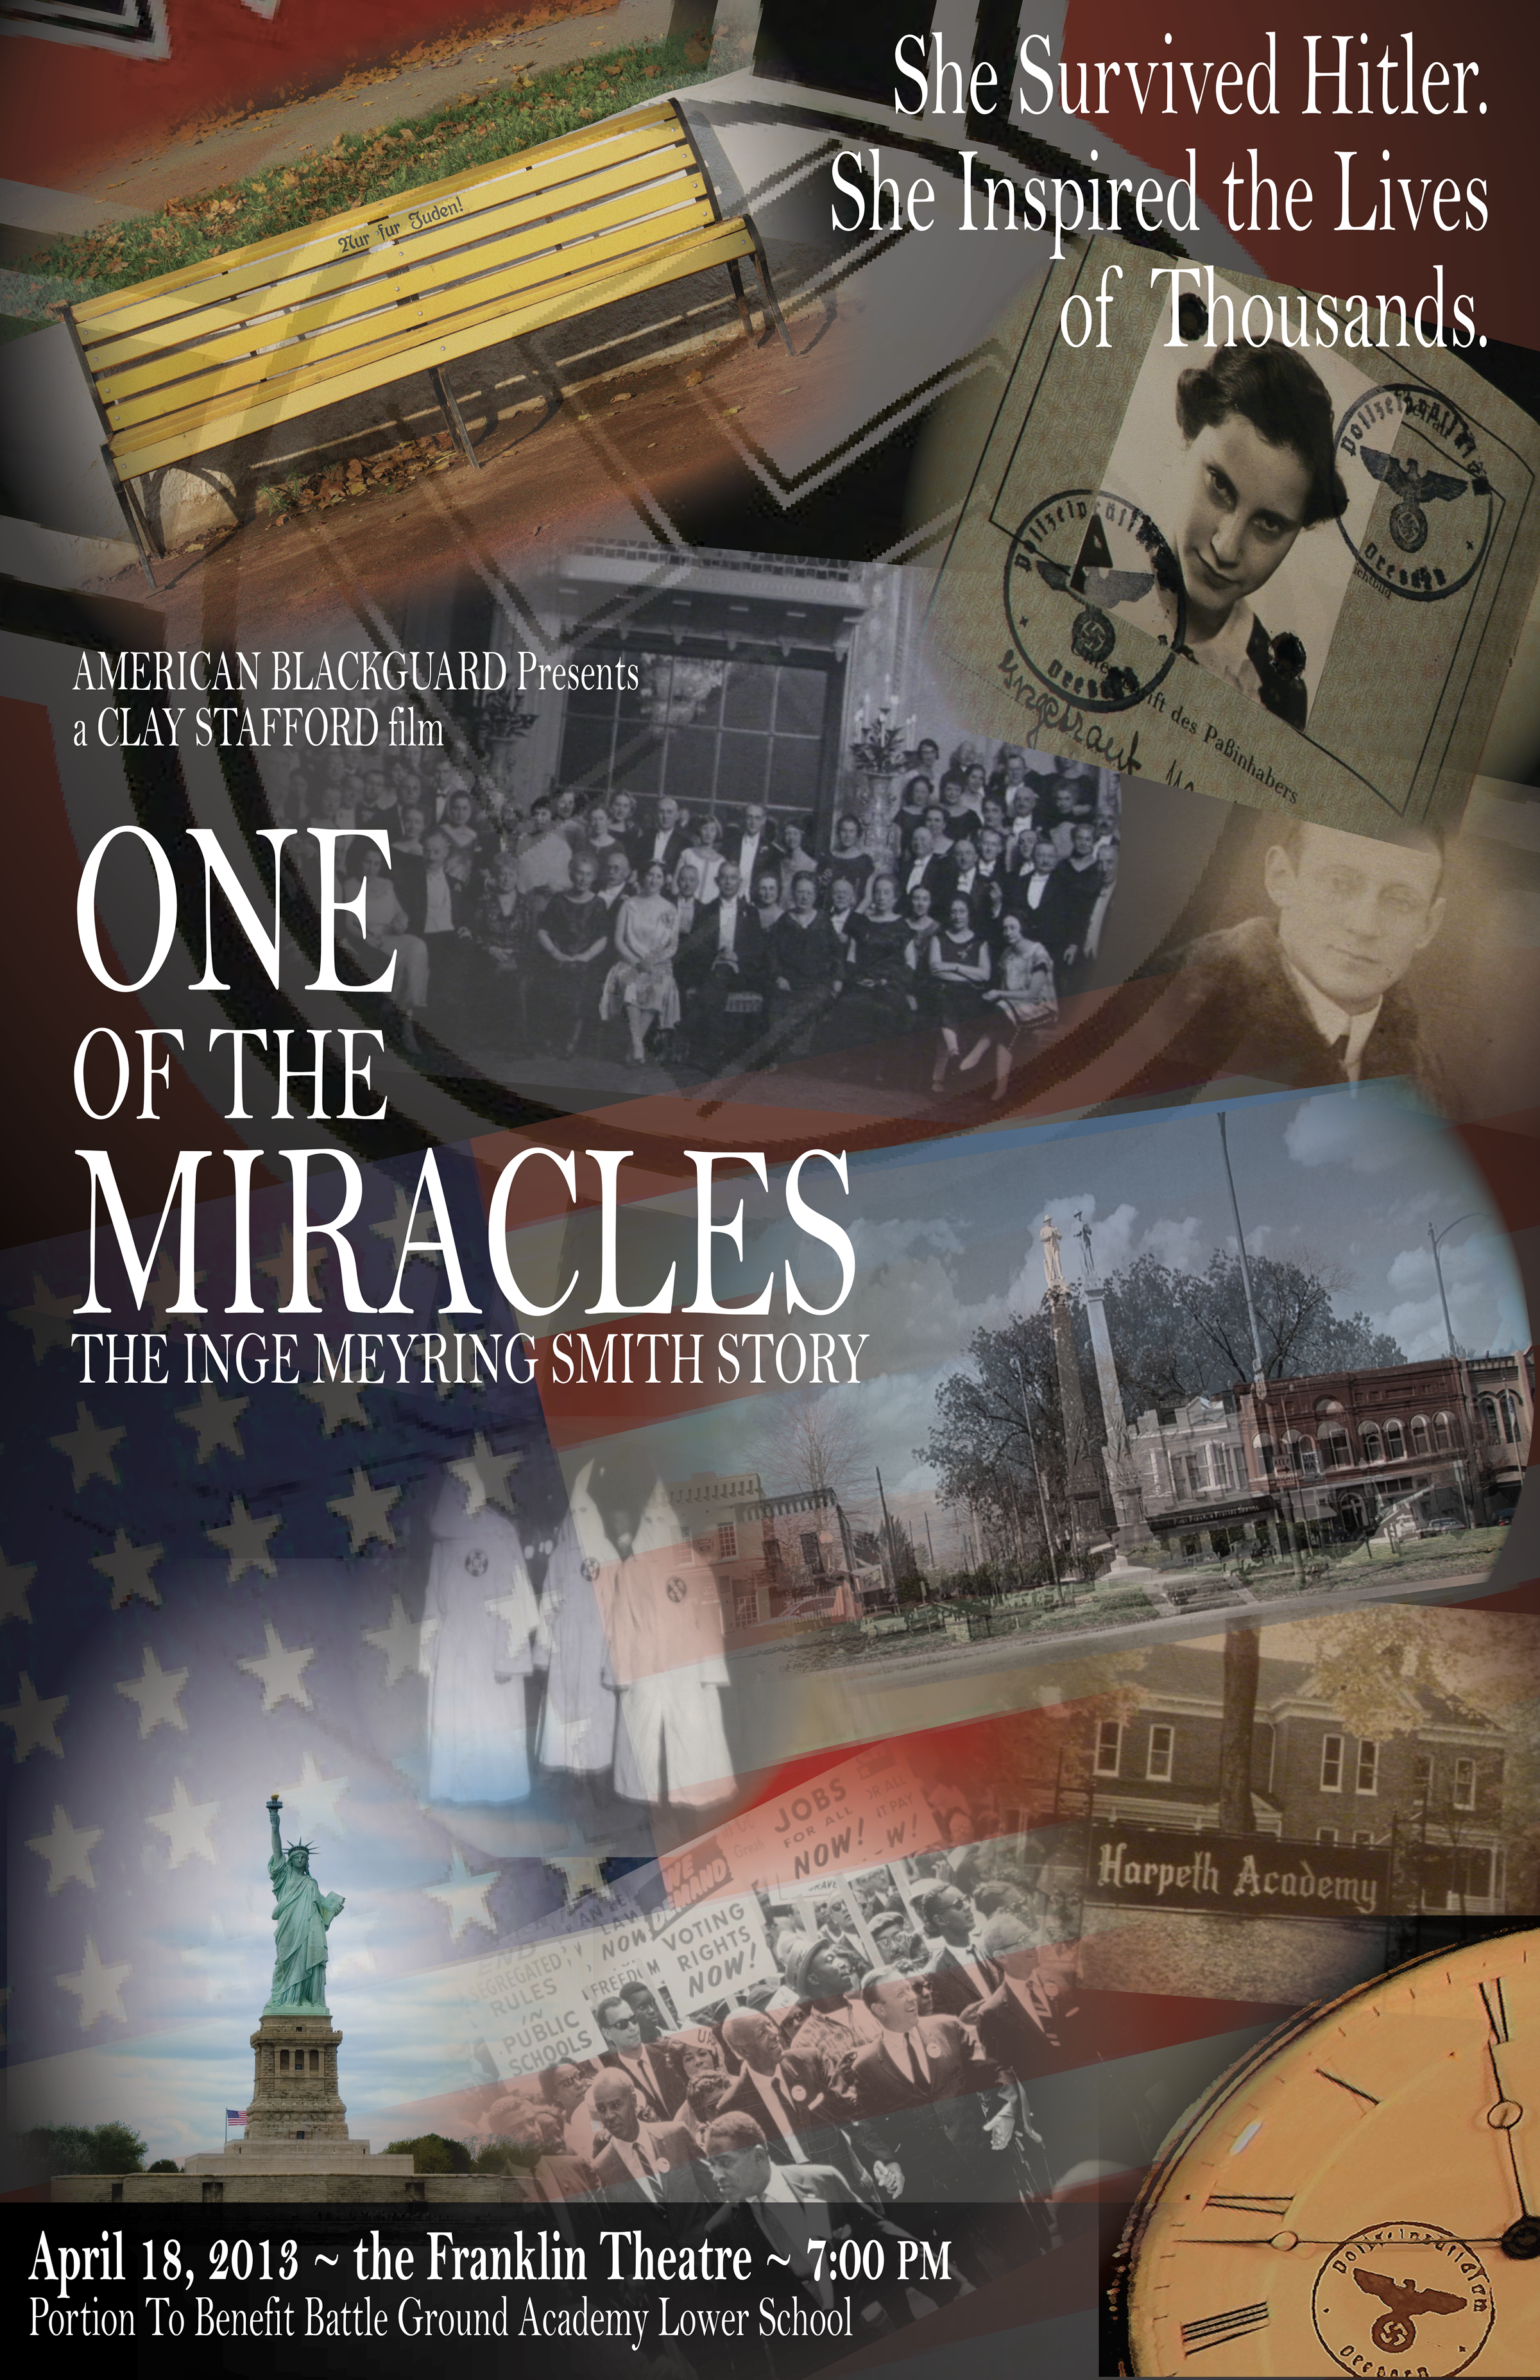 OneOfTheMiracles_Poster